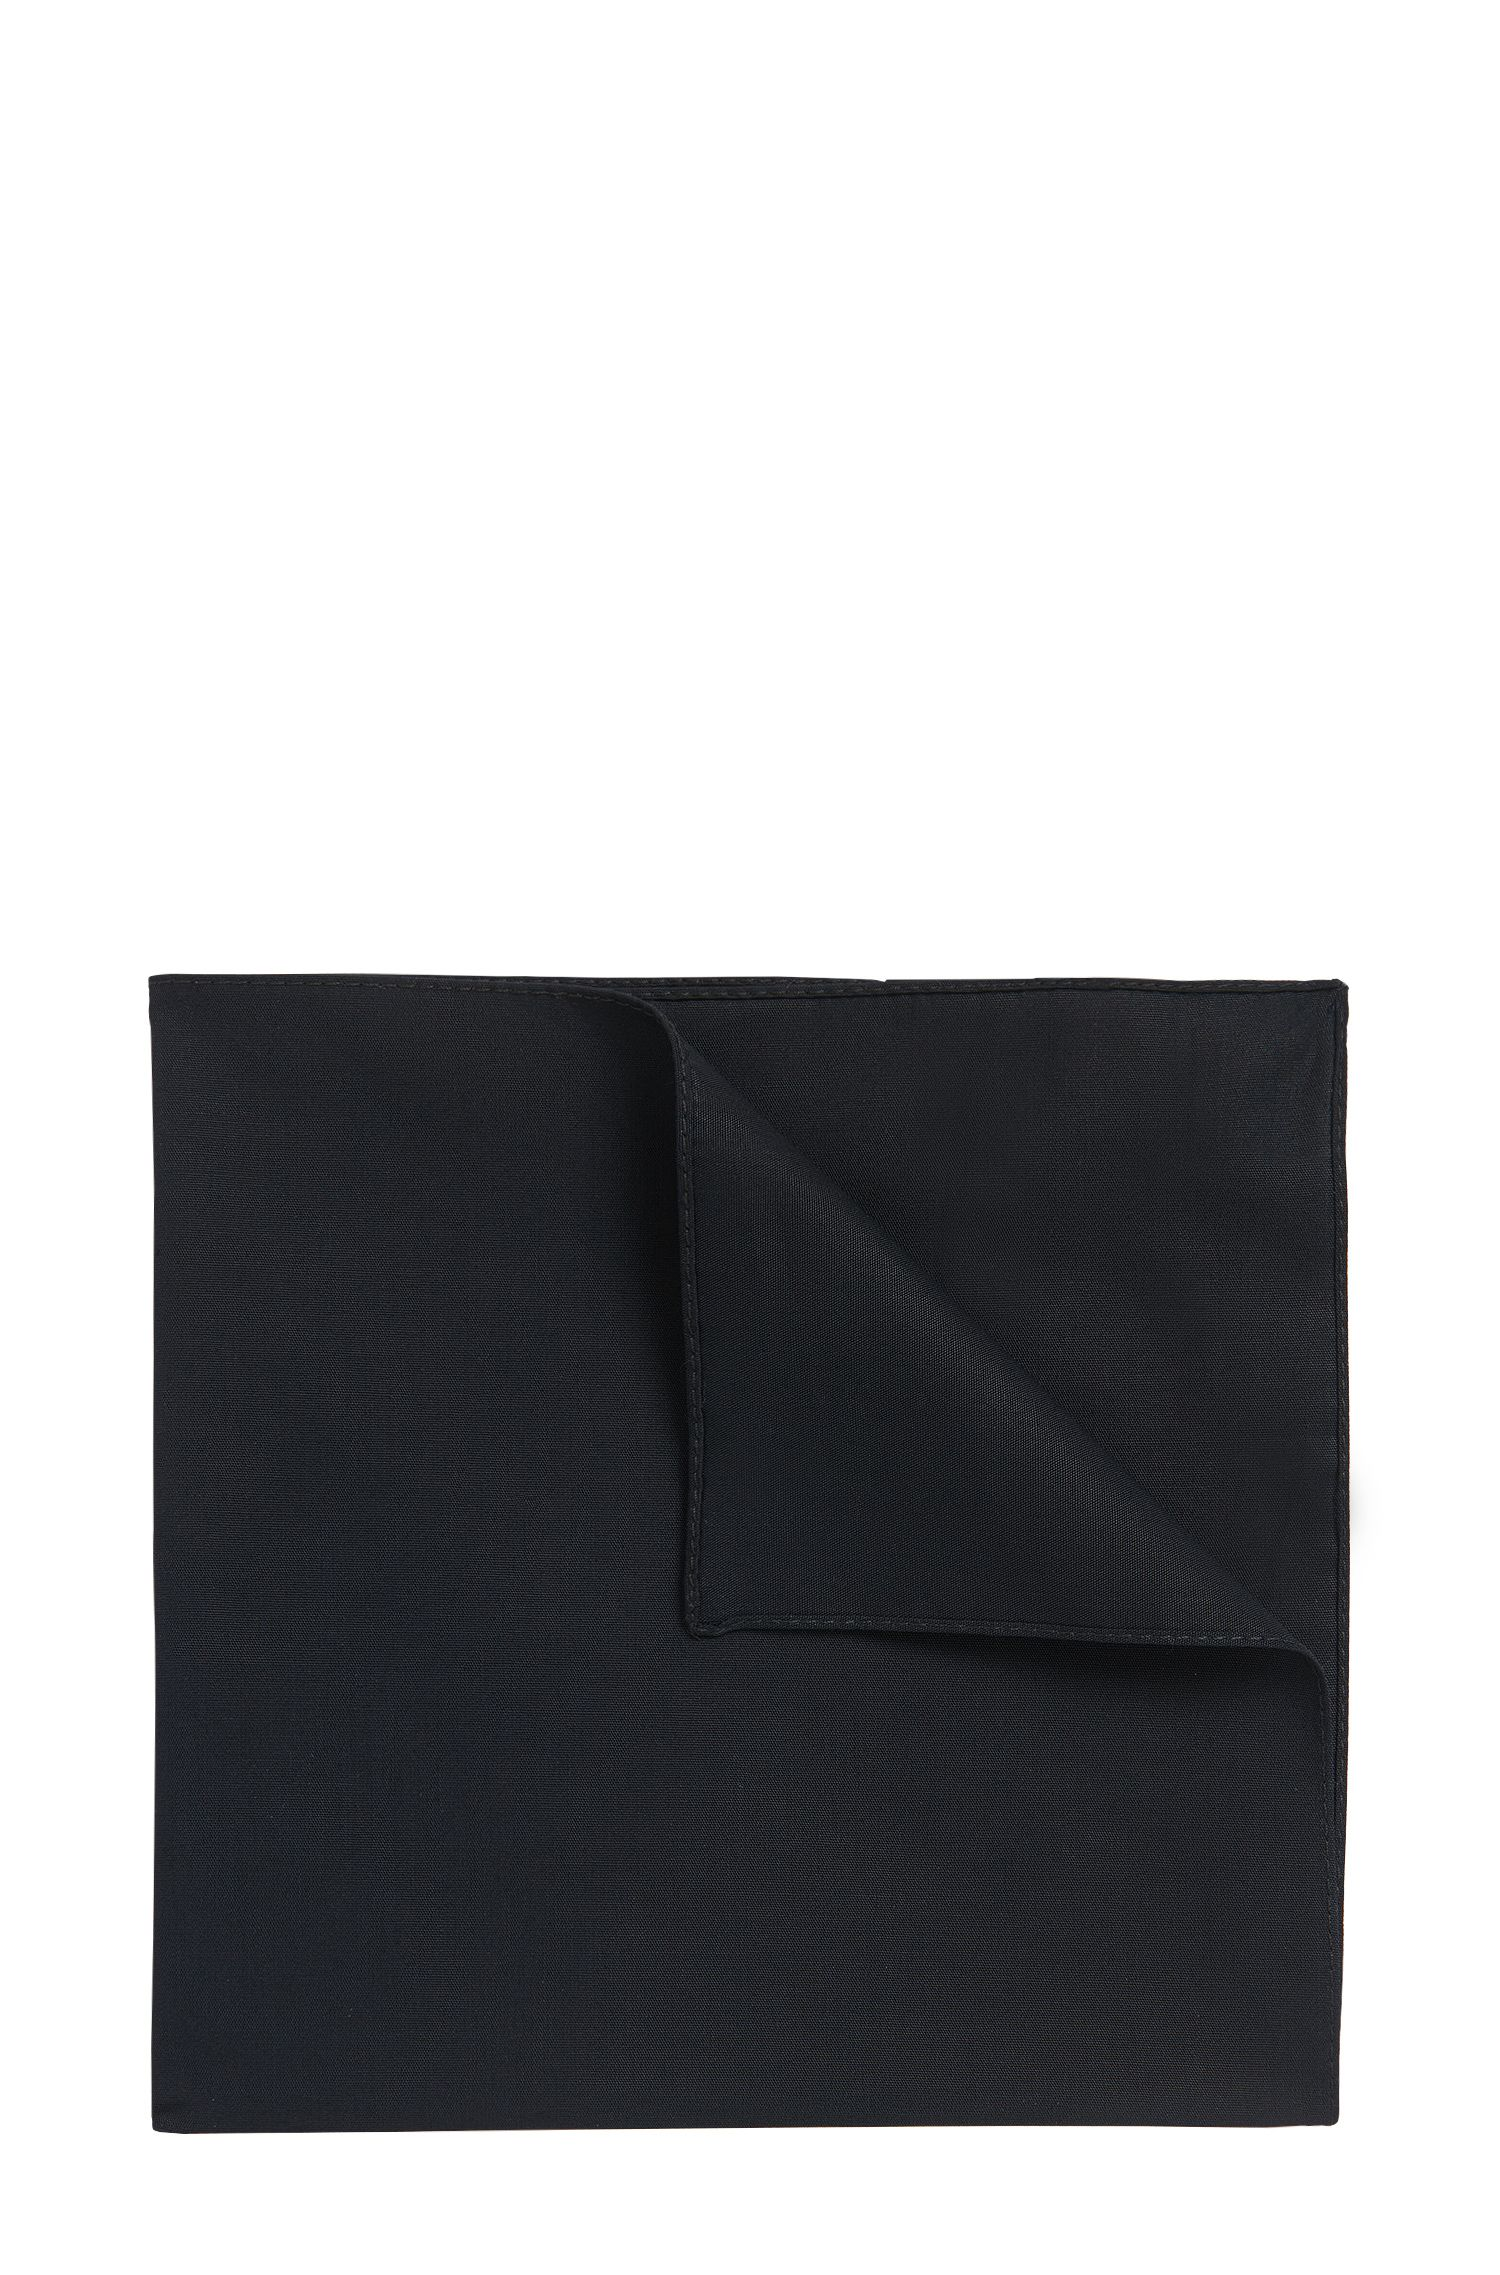 Cotton poplin pocket square